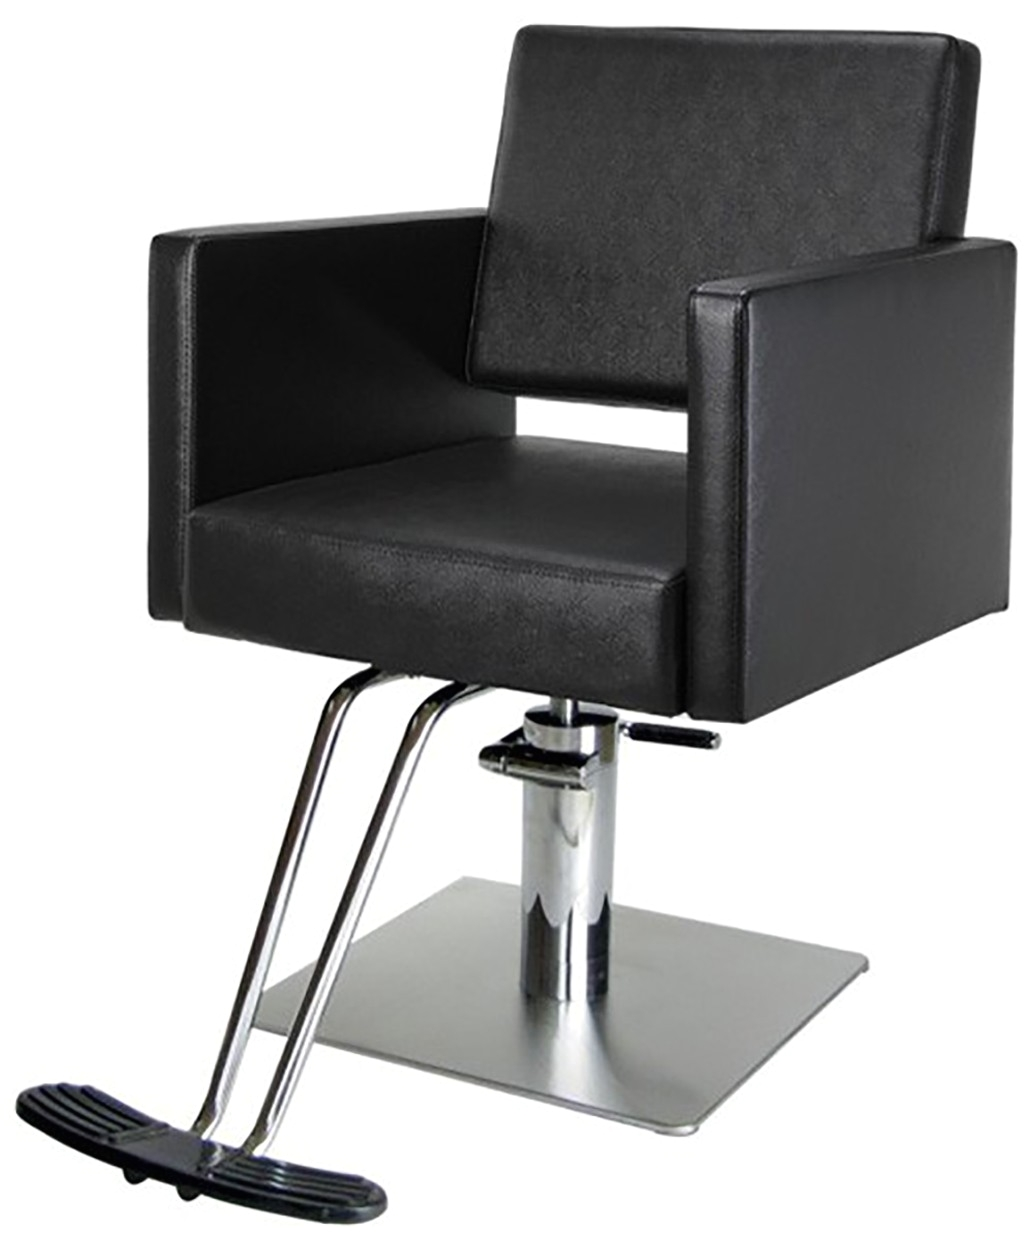 Cheap Beauty Salon Chairs for Sale Aria Modern Salon Styling Chair On Square Base Buy Rite